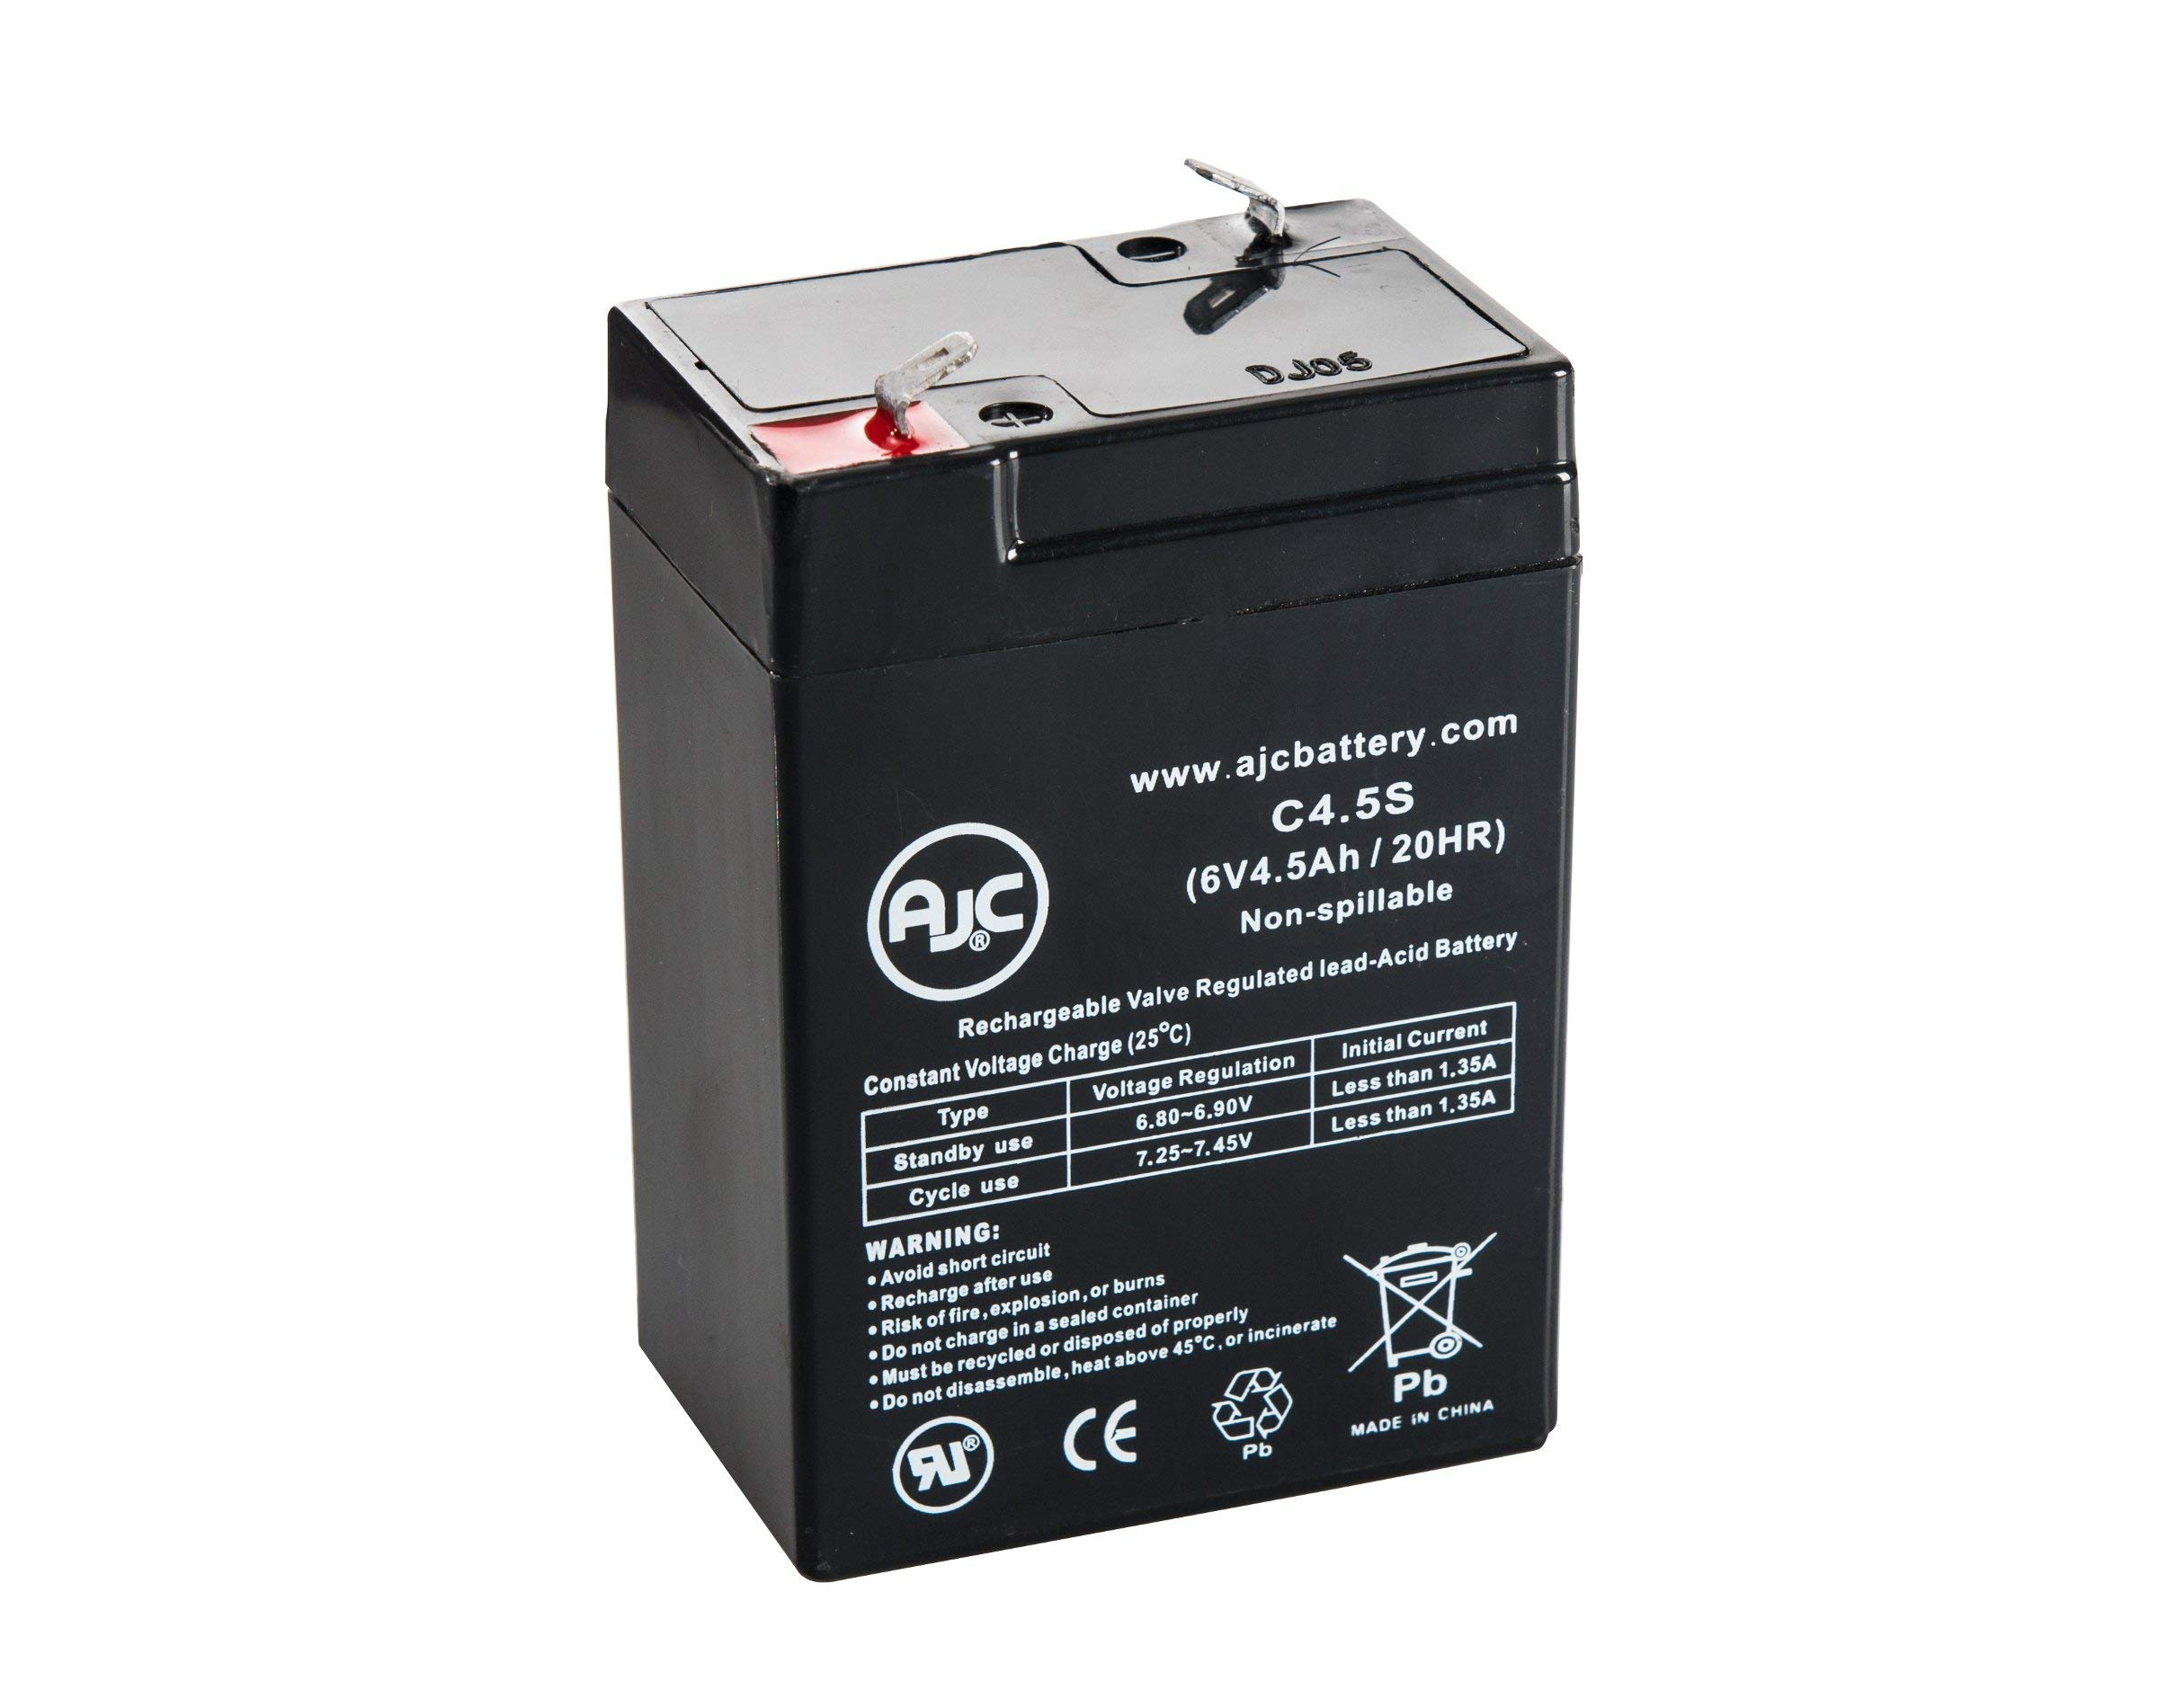 Portalac PE6V4.5 6V 4.5Ah UPS Battery - This is an AJC Brand Replacement